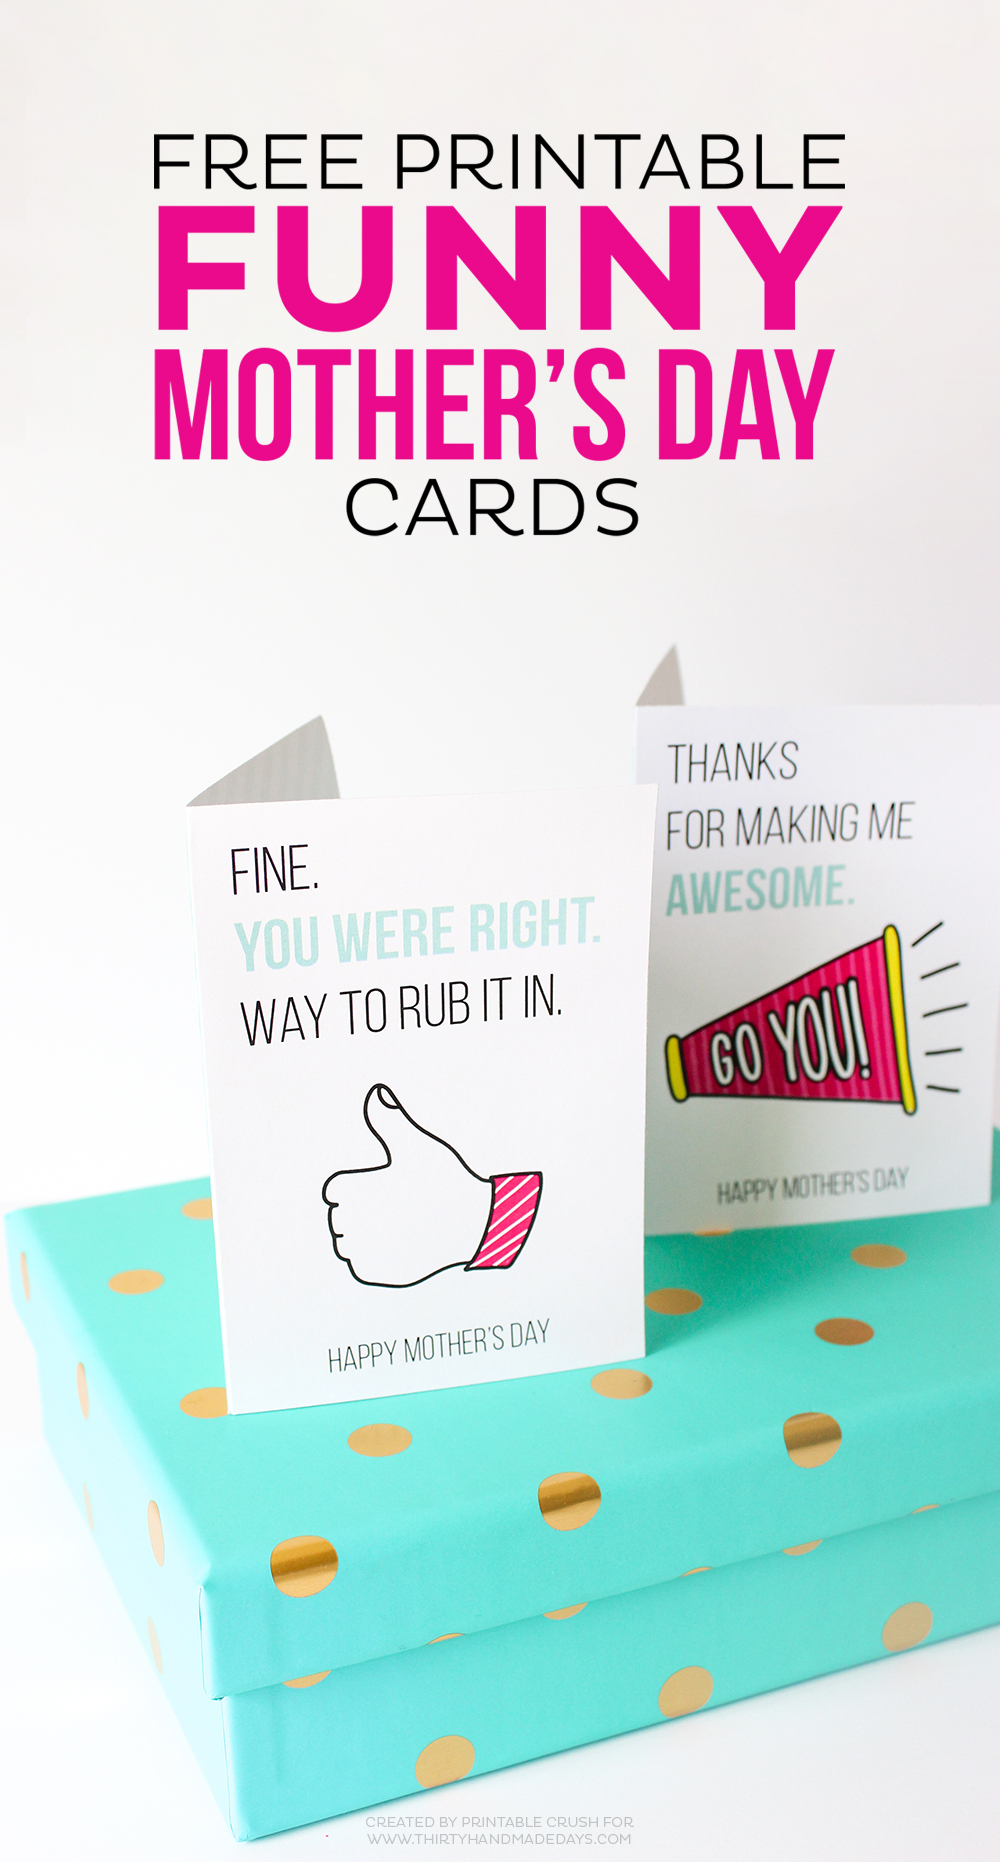 Printable Mother's Day Cards - Free Printable Mother's Day Games